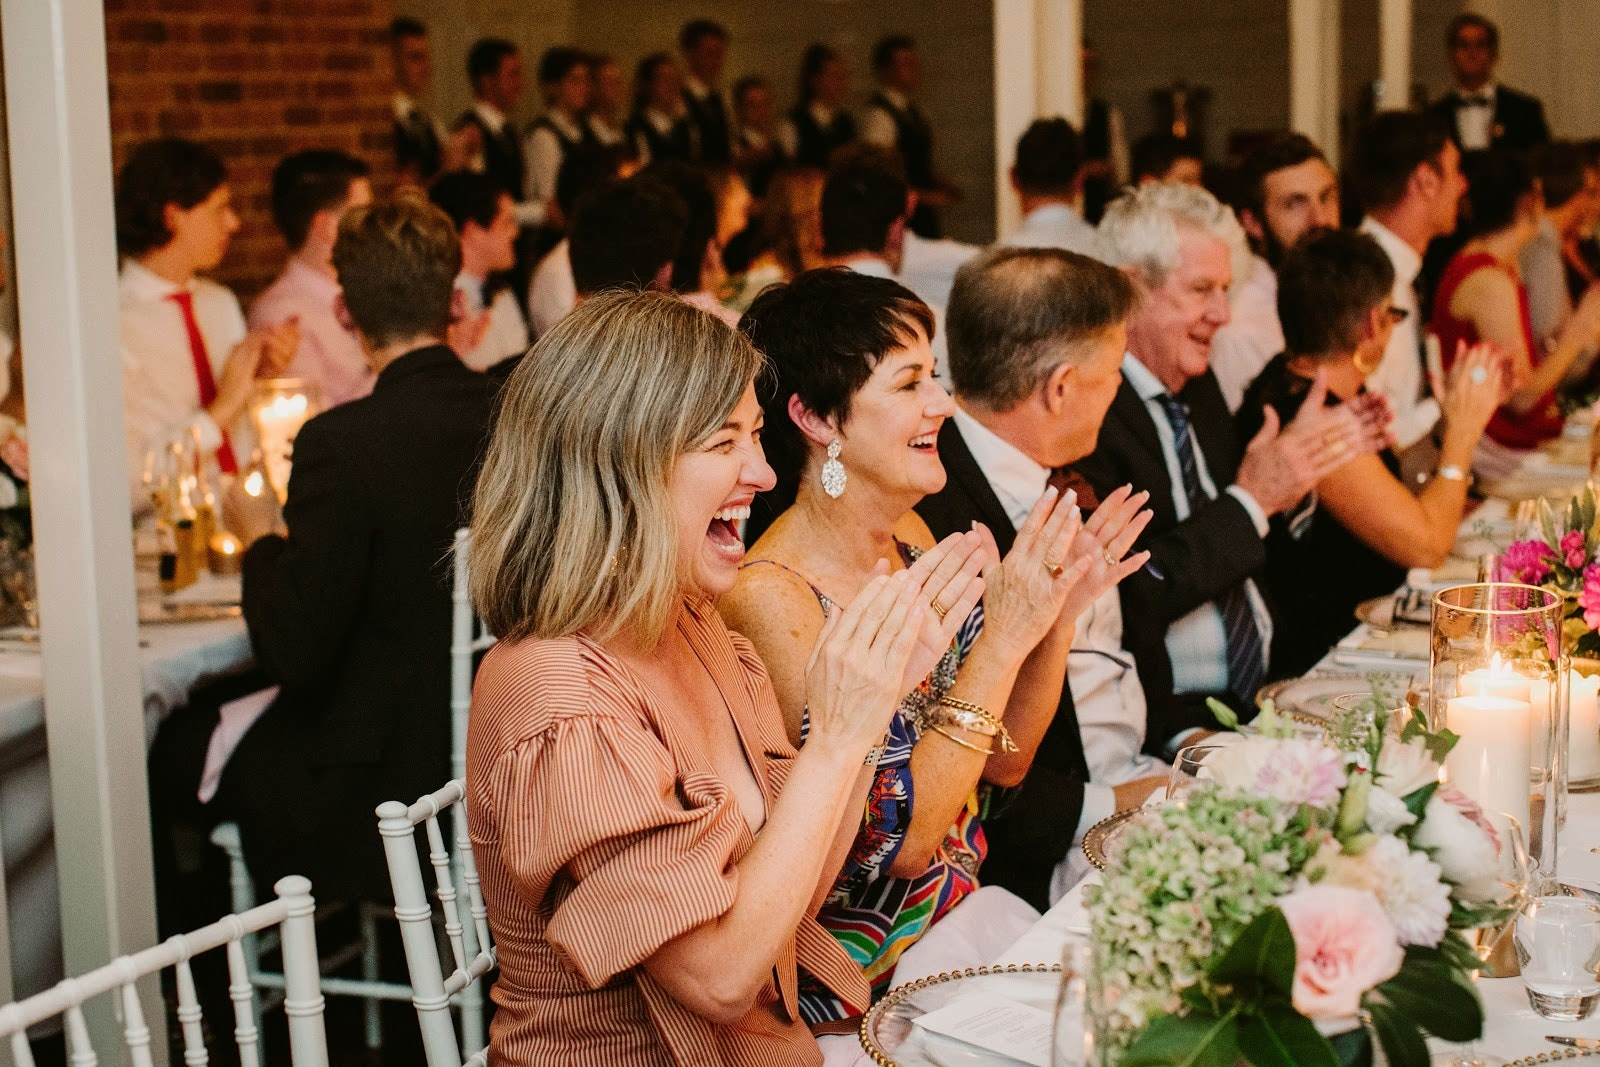 Guests laugh and clap